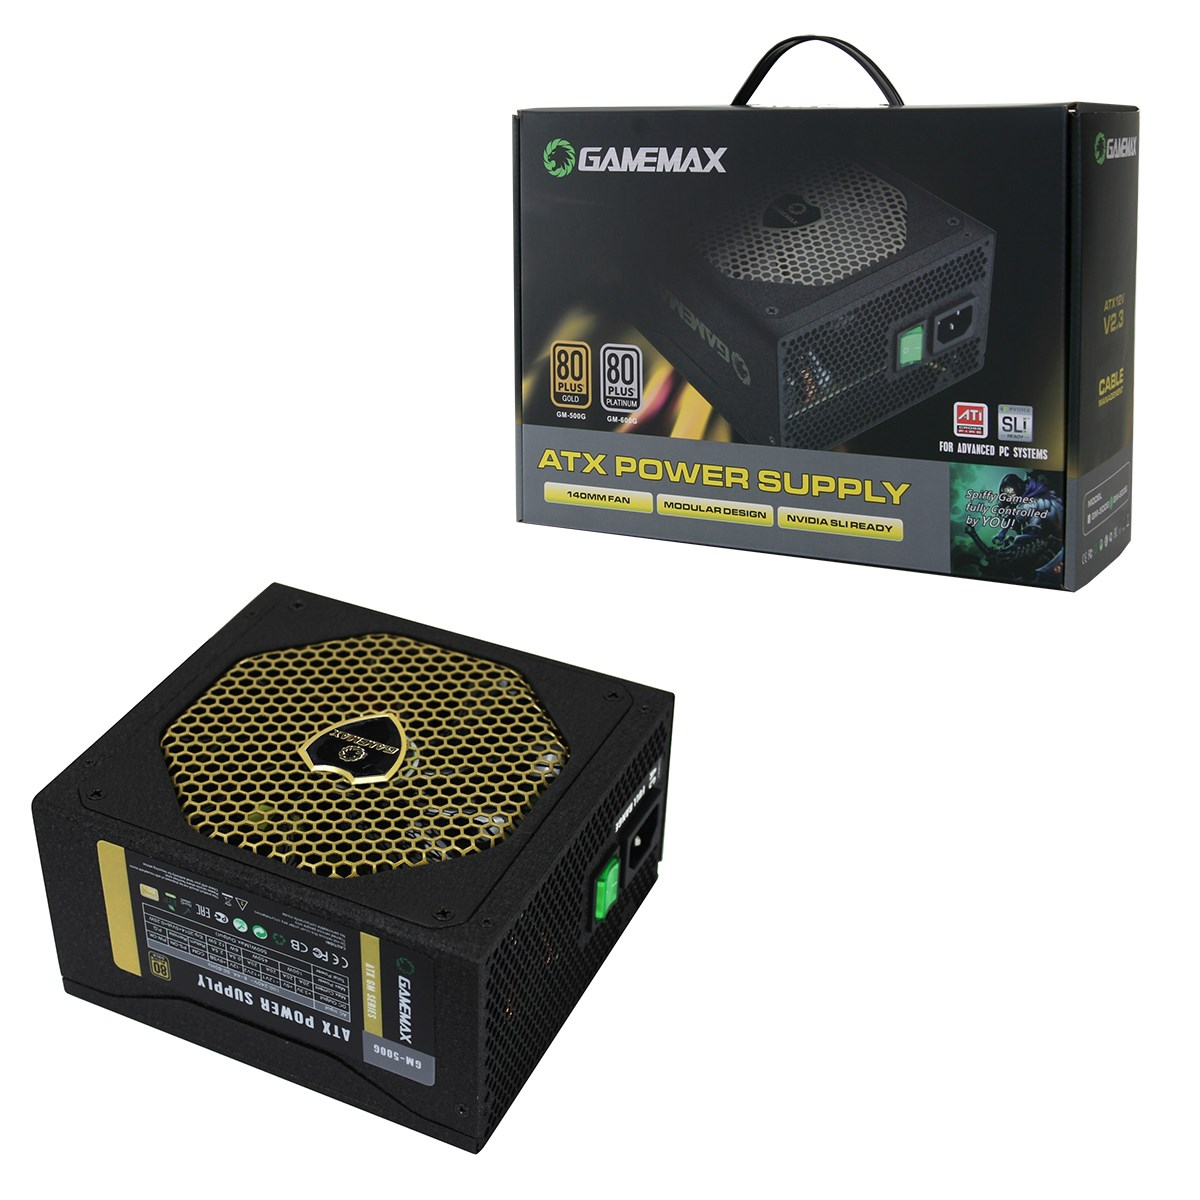 game max gm w modular power supply plus gold gm g game max gm500 500w modular 80 gold psu